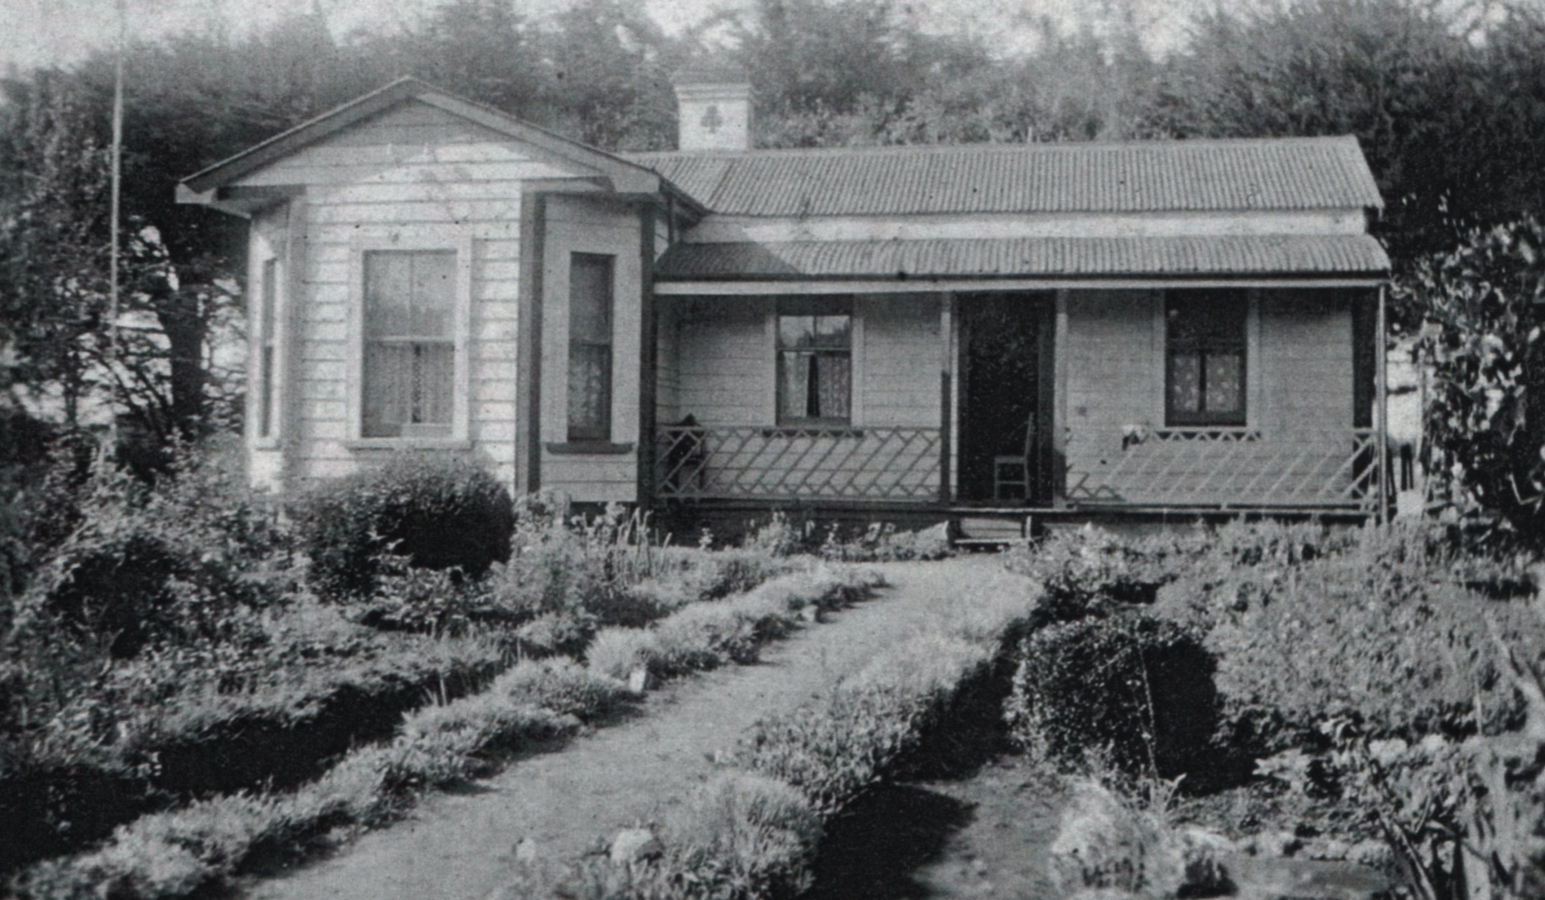 A black and  white photograph of a bungalow with a neat garden on both sides of a straight path in front.